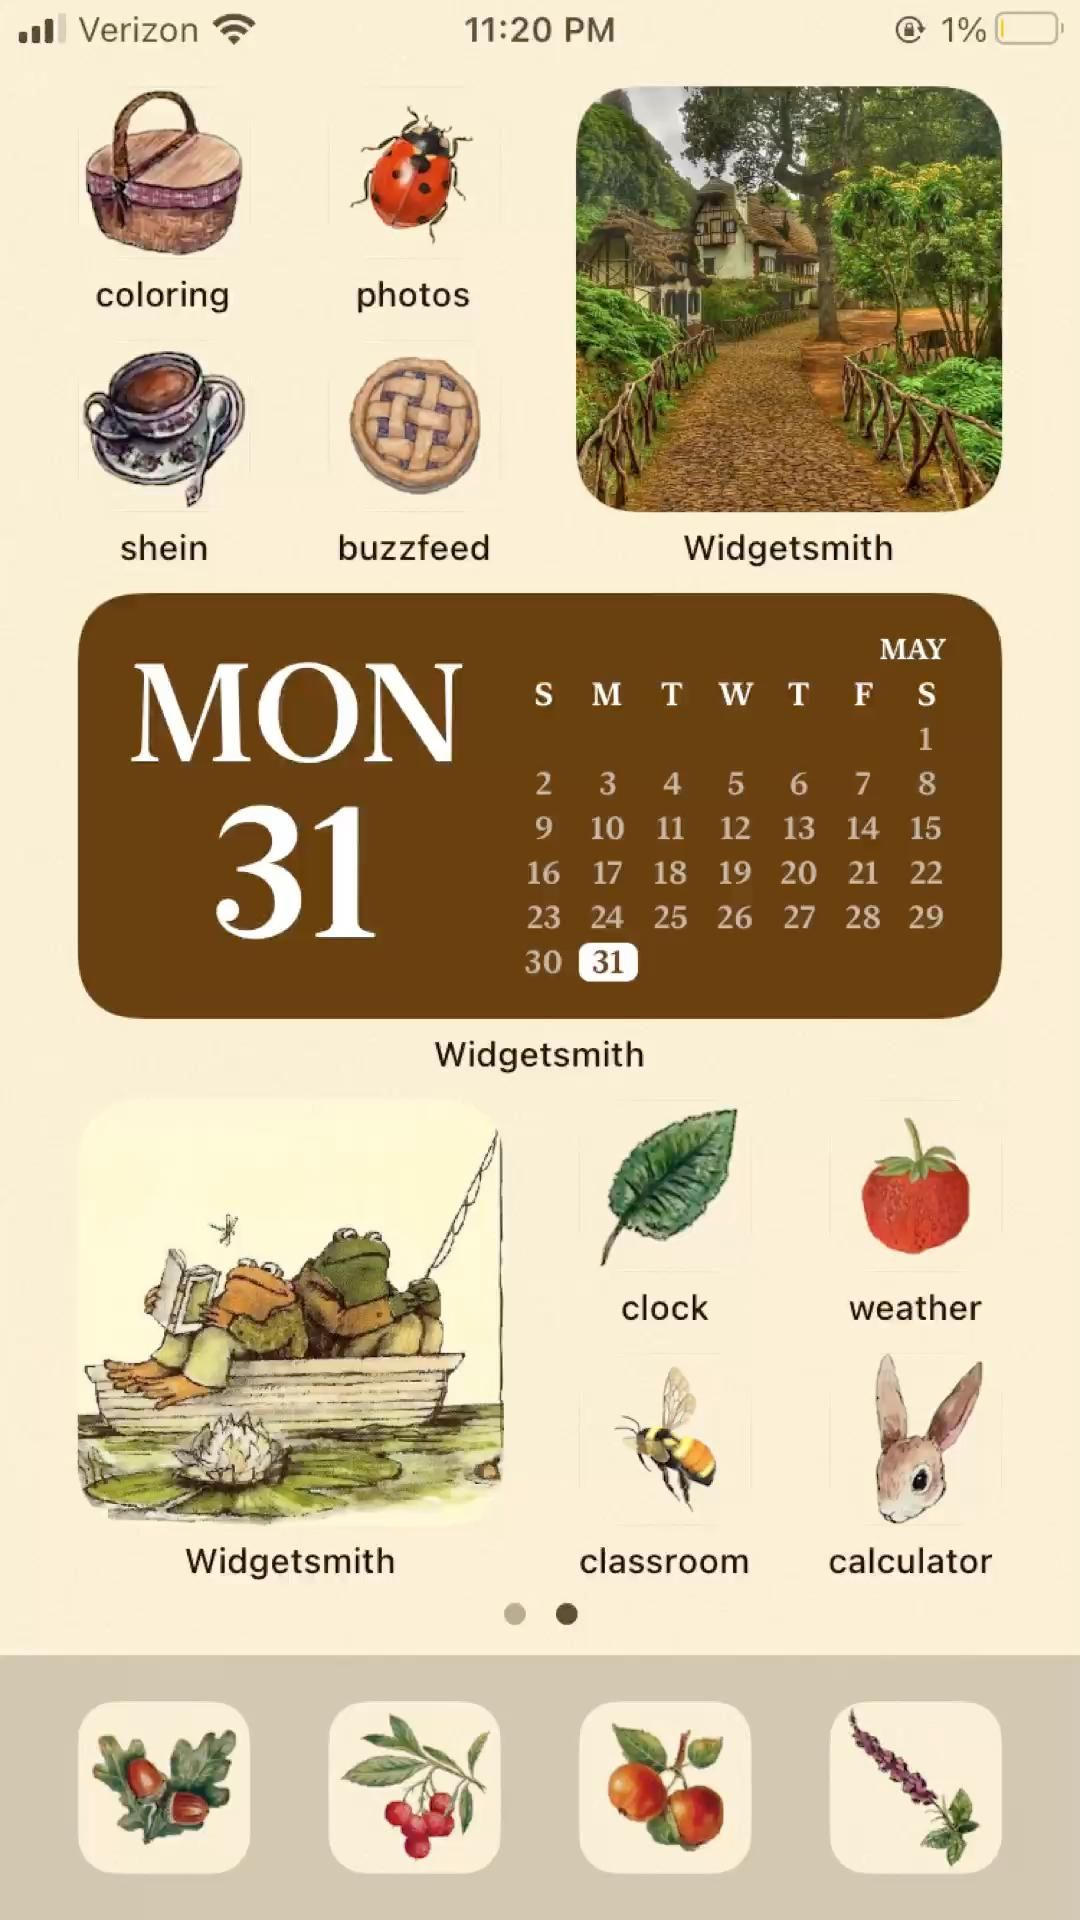 frog & toad ios14 home screen set 2 —follow for more home screen sets <33